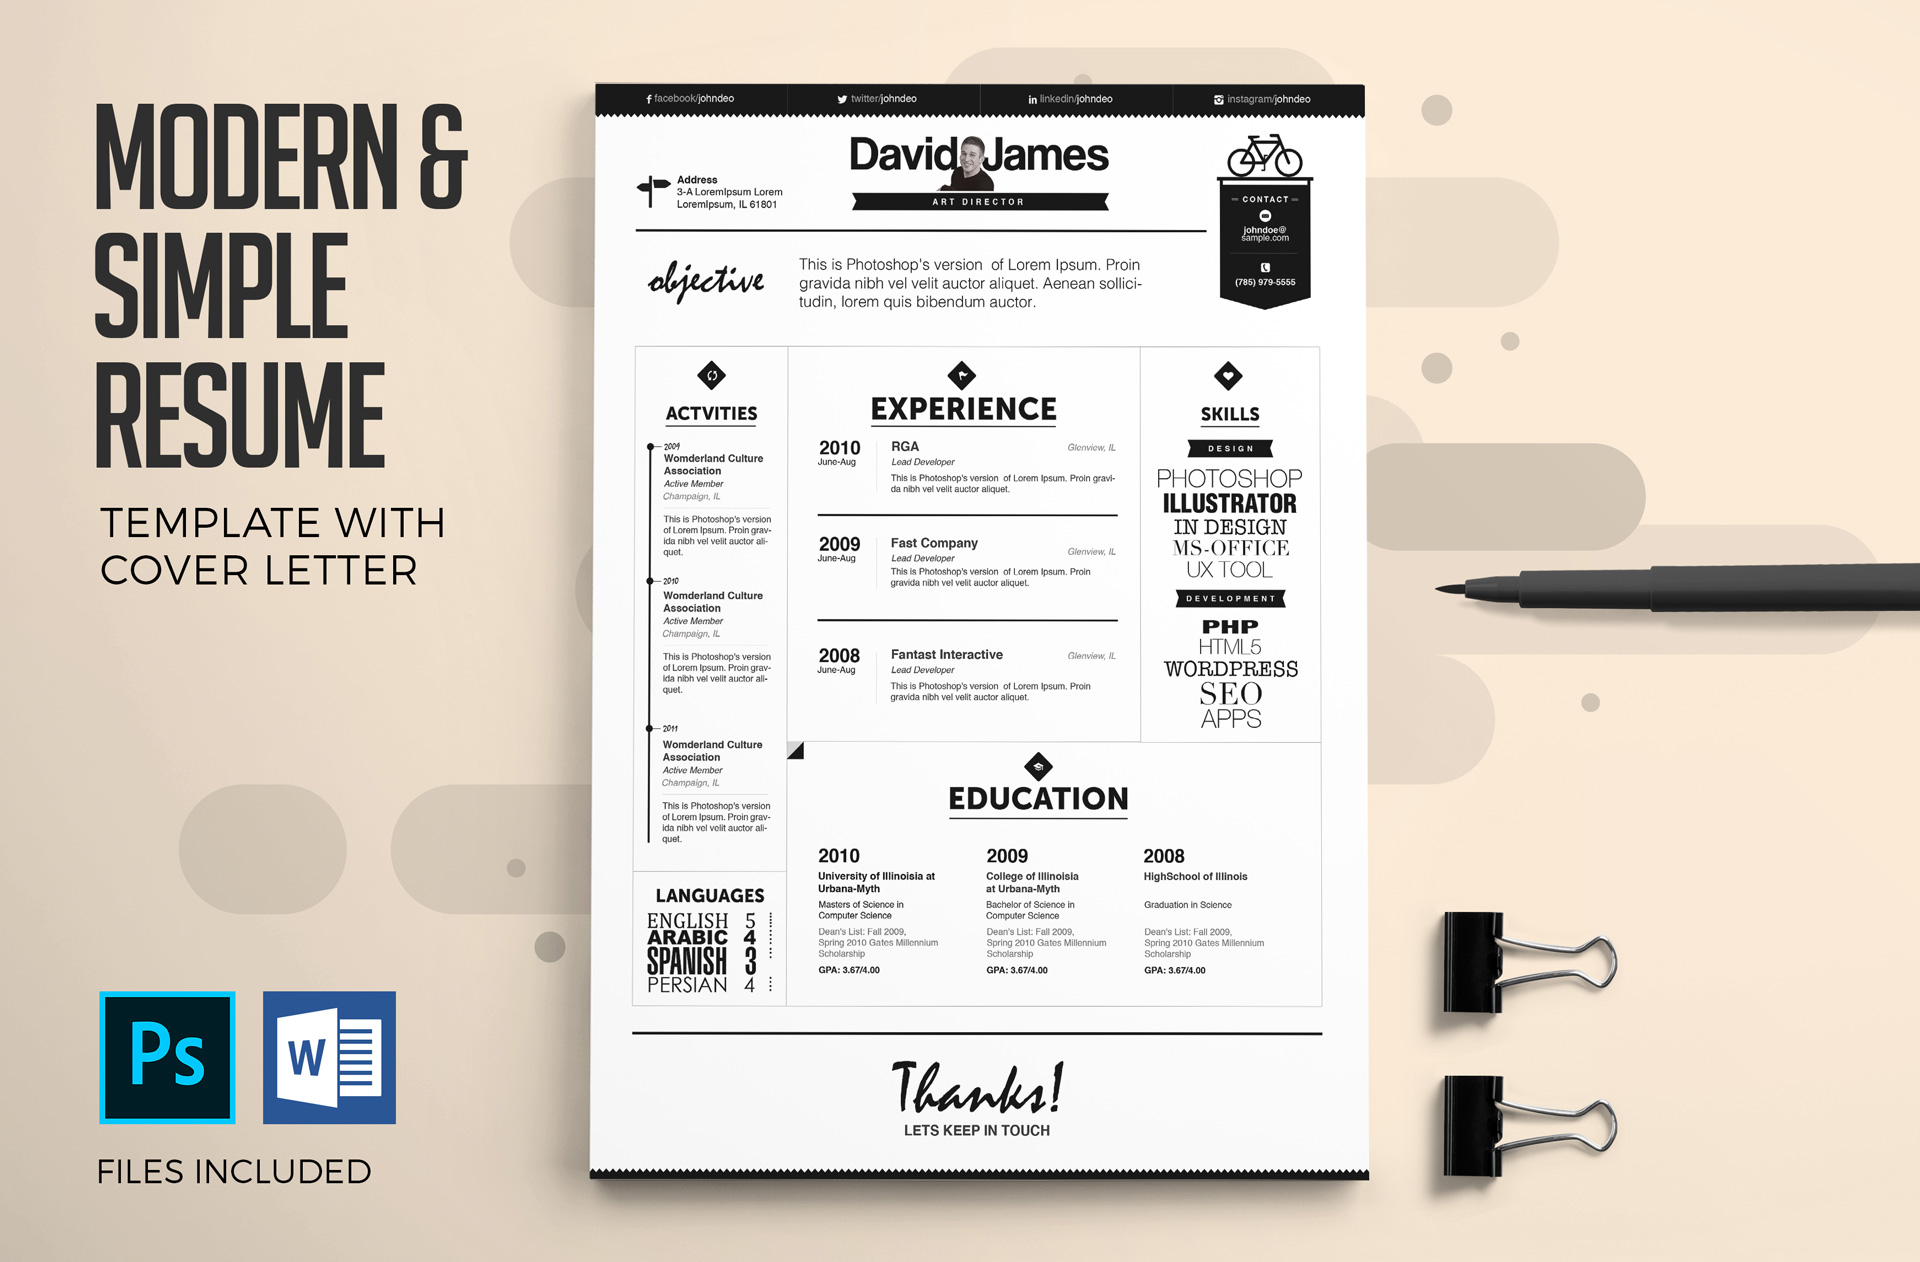 4-in-1 Executive Resume & Cover Letter Templates | Creative ... on flyer templates, print brochure templates, crime scene markers templates, black shopping bag templates, photography website templates, fancy title templates, page layout templates, simple memory mates templates, household notebook templates, 1 page brochure templates, label templates, pdf templates, create your own ticket templates, logo templates, photography portfolio templates, text templates, website header templates, internet auto sales templates, photography branding templates, newsletter templates,